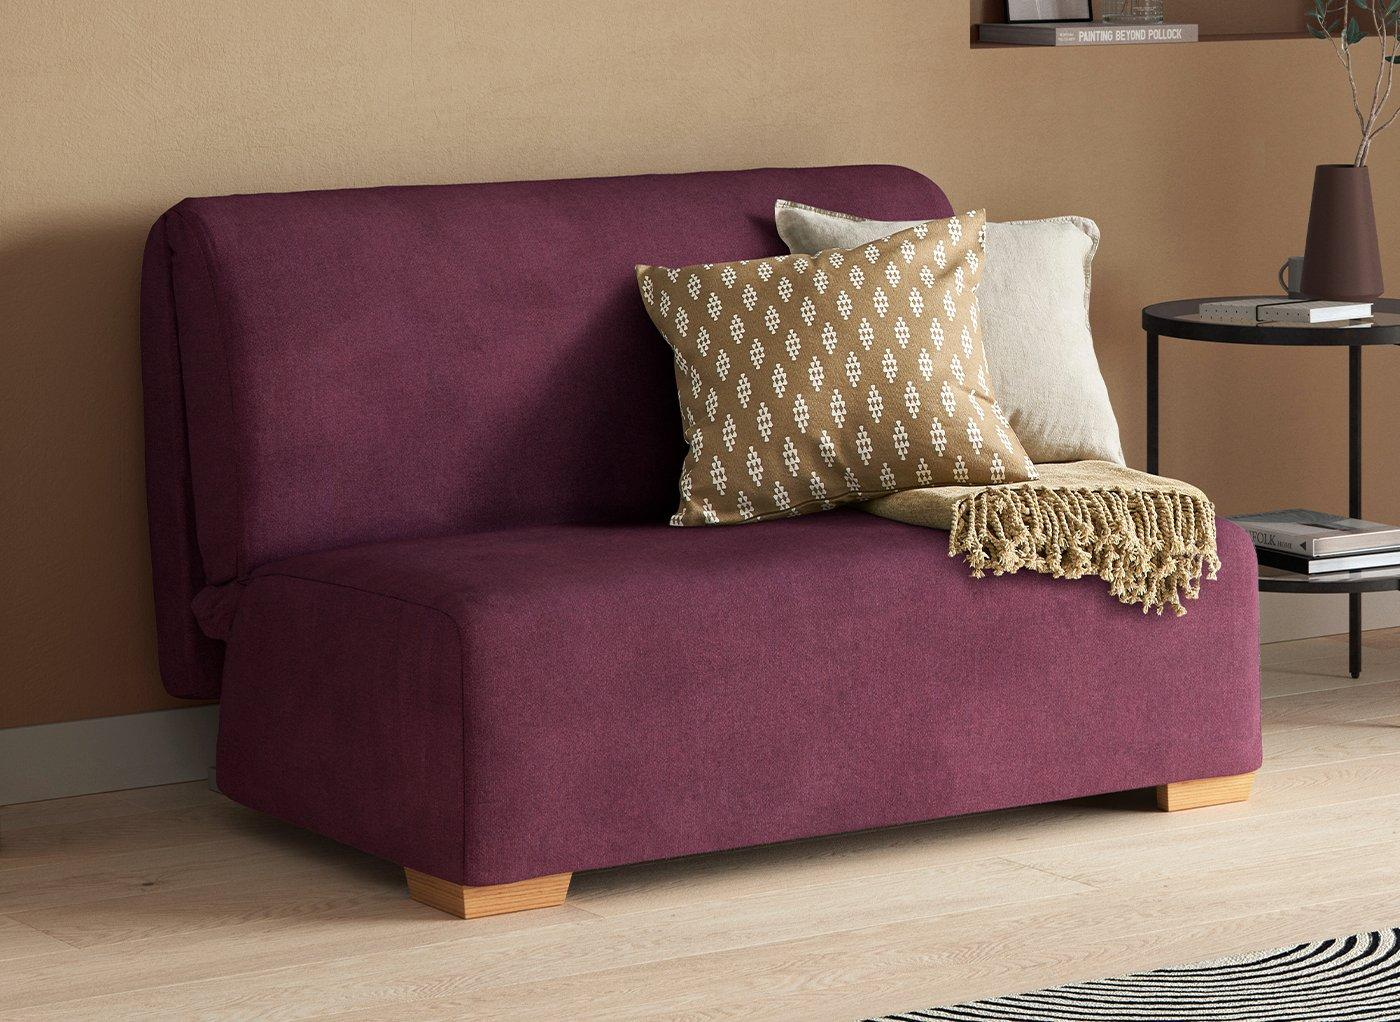 Cork 2 Seater 4'0 A-Frame Sofa Bed - Plum Small Double PURPLE